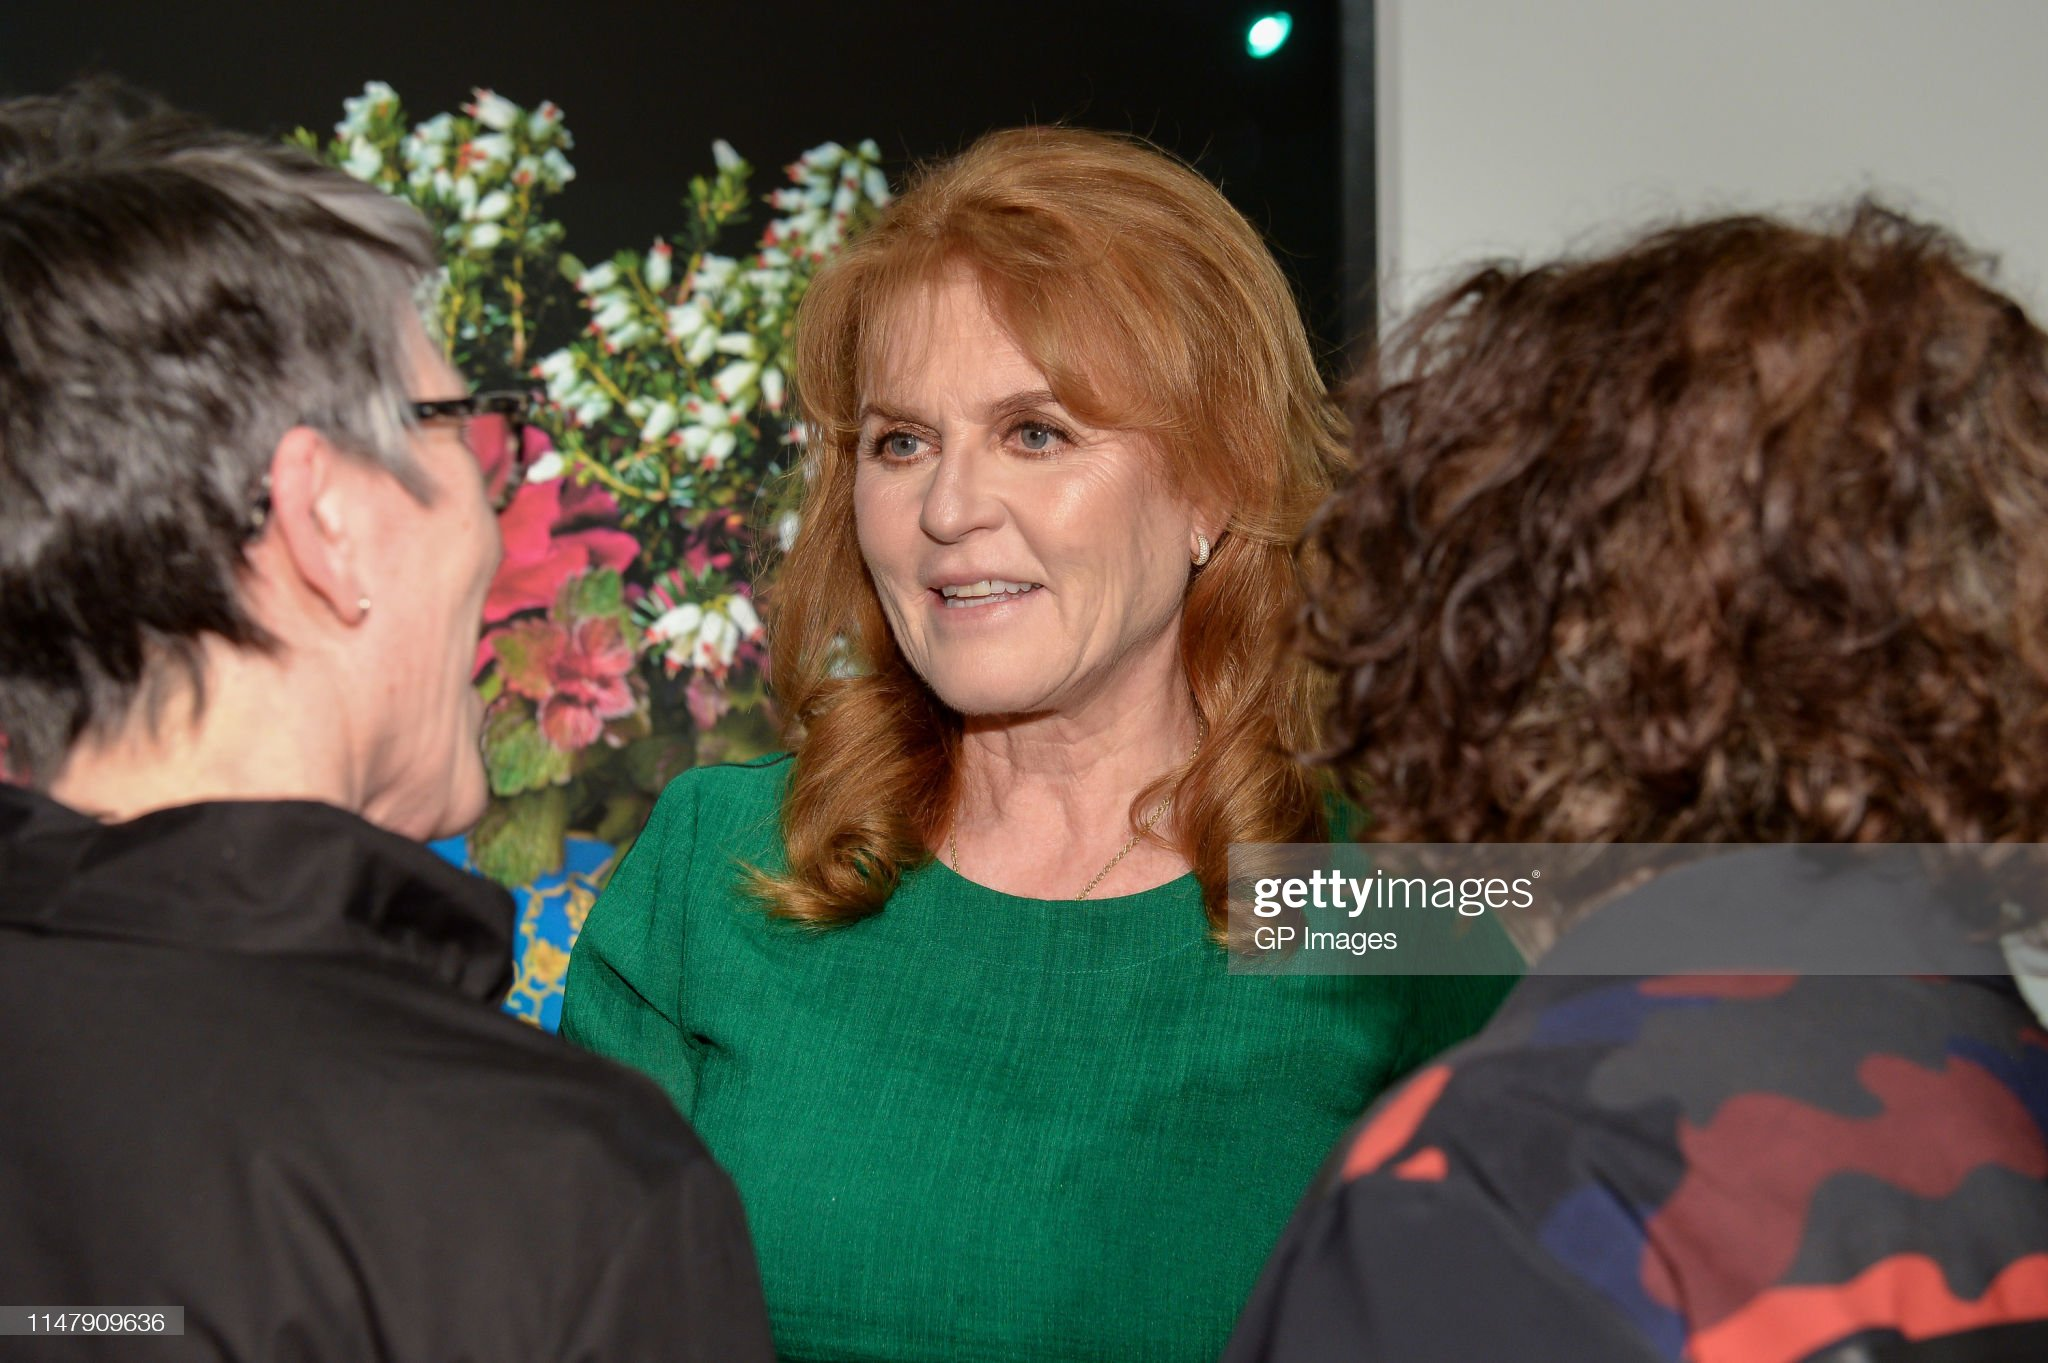 https://media.gettyimages.com/photos/duchess-of-york-sarah-ferguson-attends-the-tm-glass-solo-exhibition-picture-id1147909636?s=2048x2048